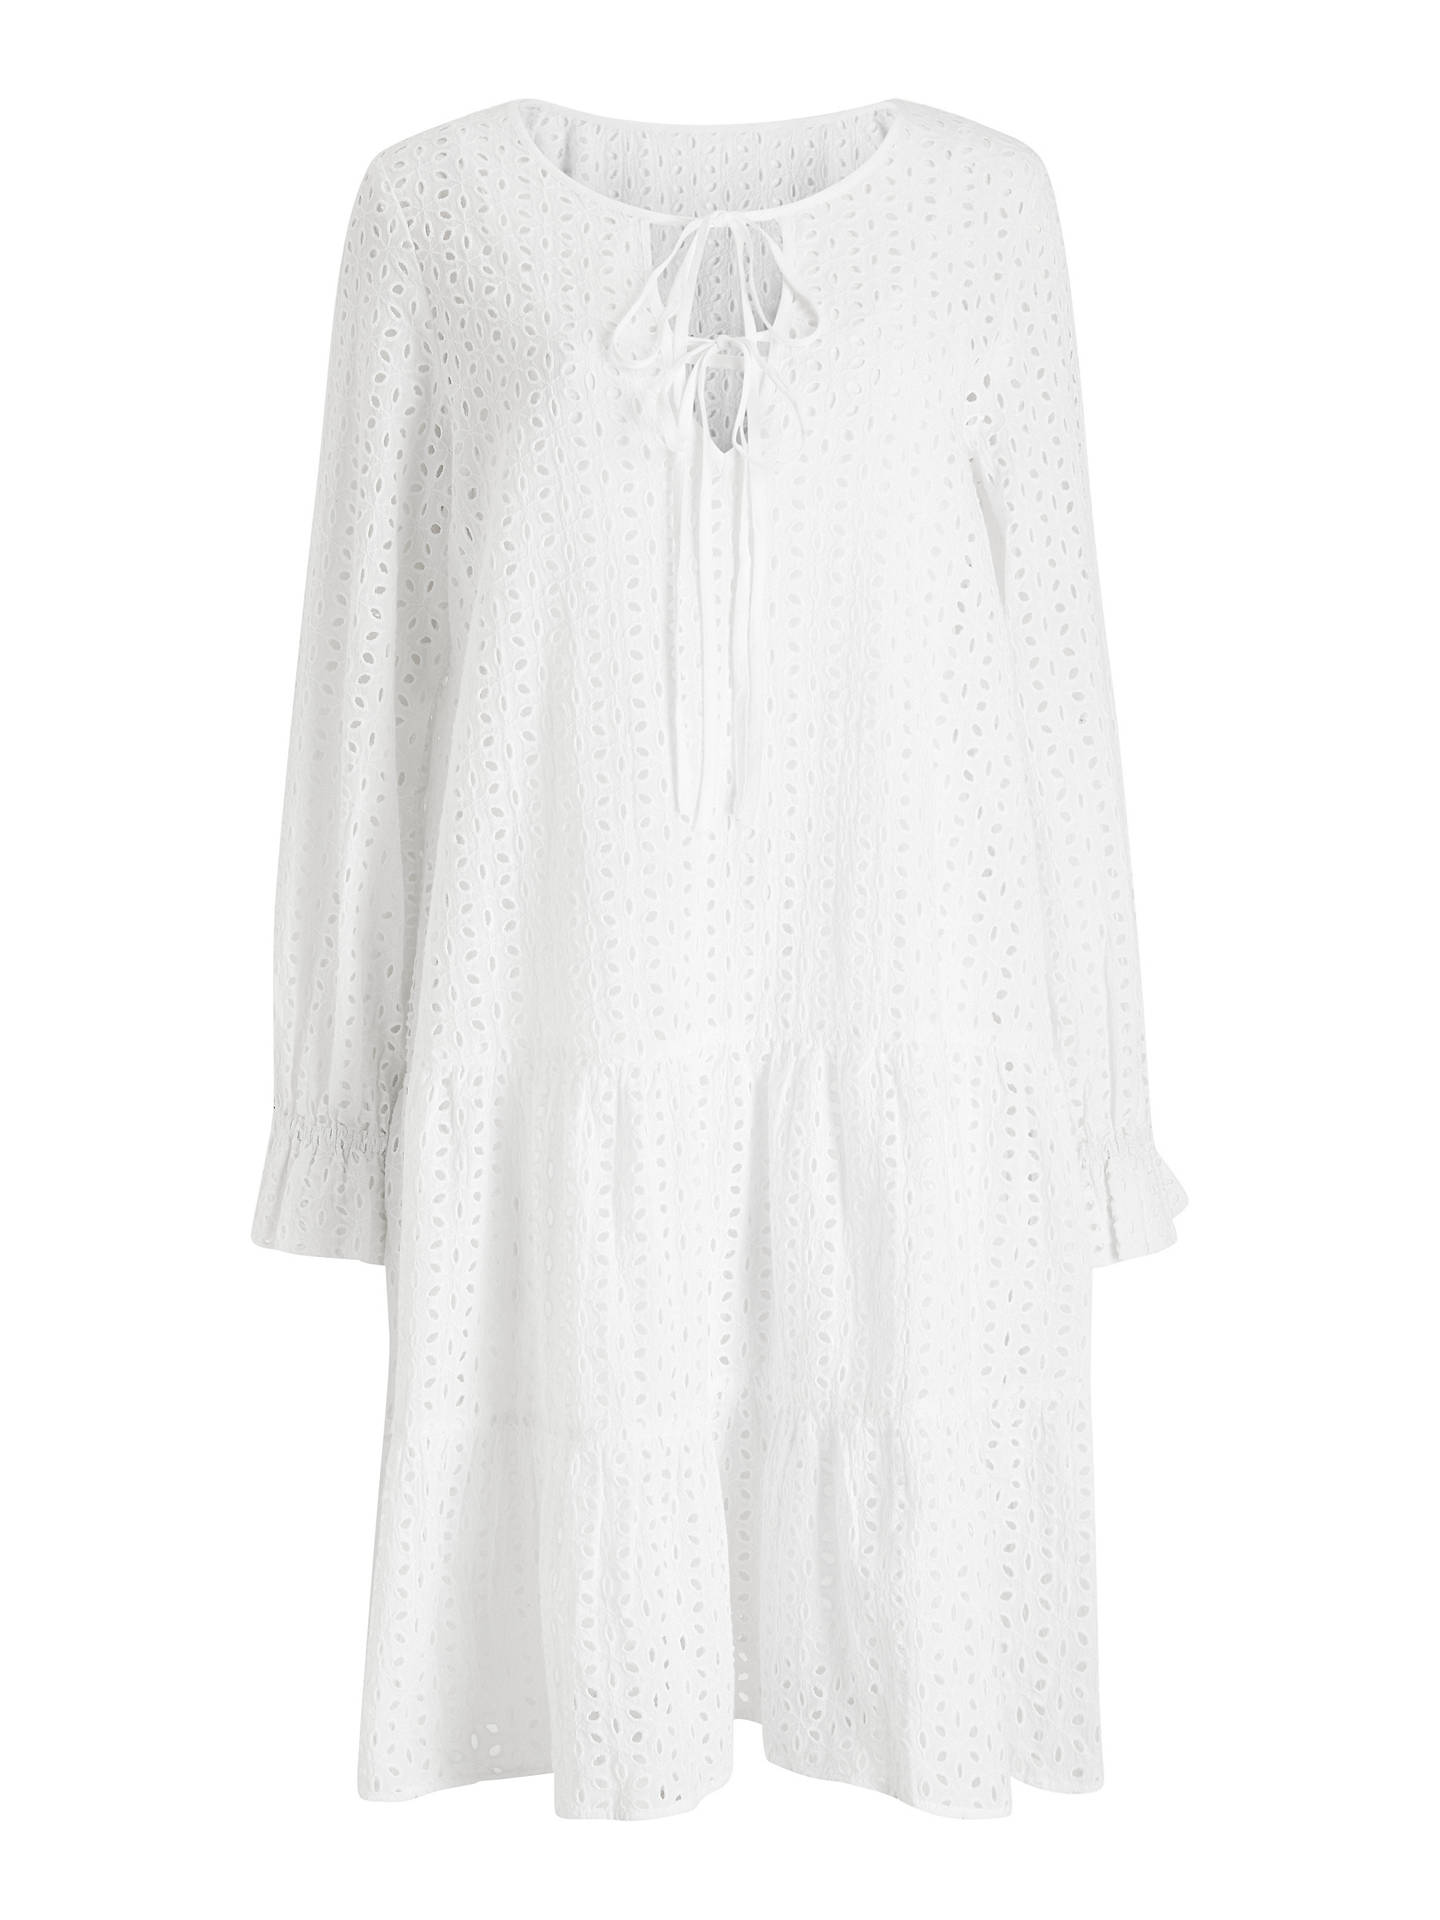 Buy Numph Nualzbet Broderie Midi Dress, Bright White, 8 Online at johnlewis.com